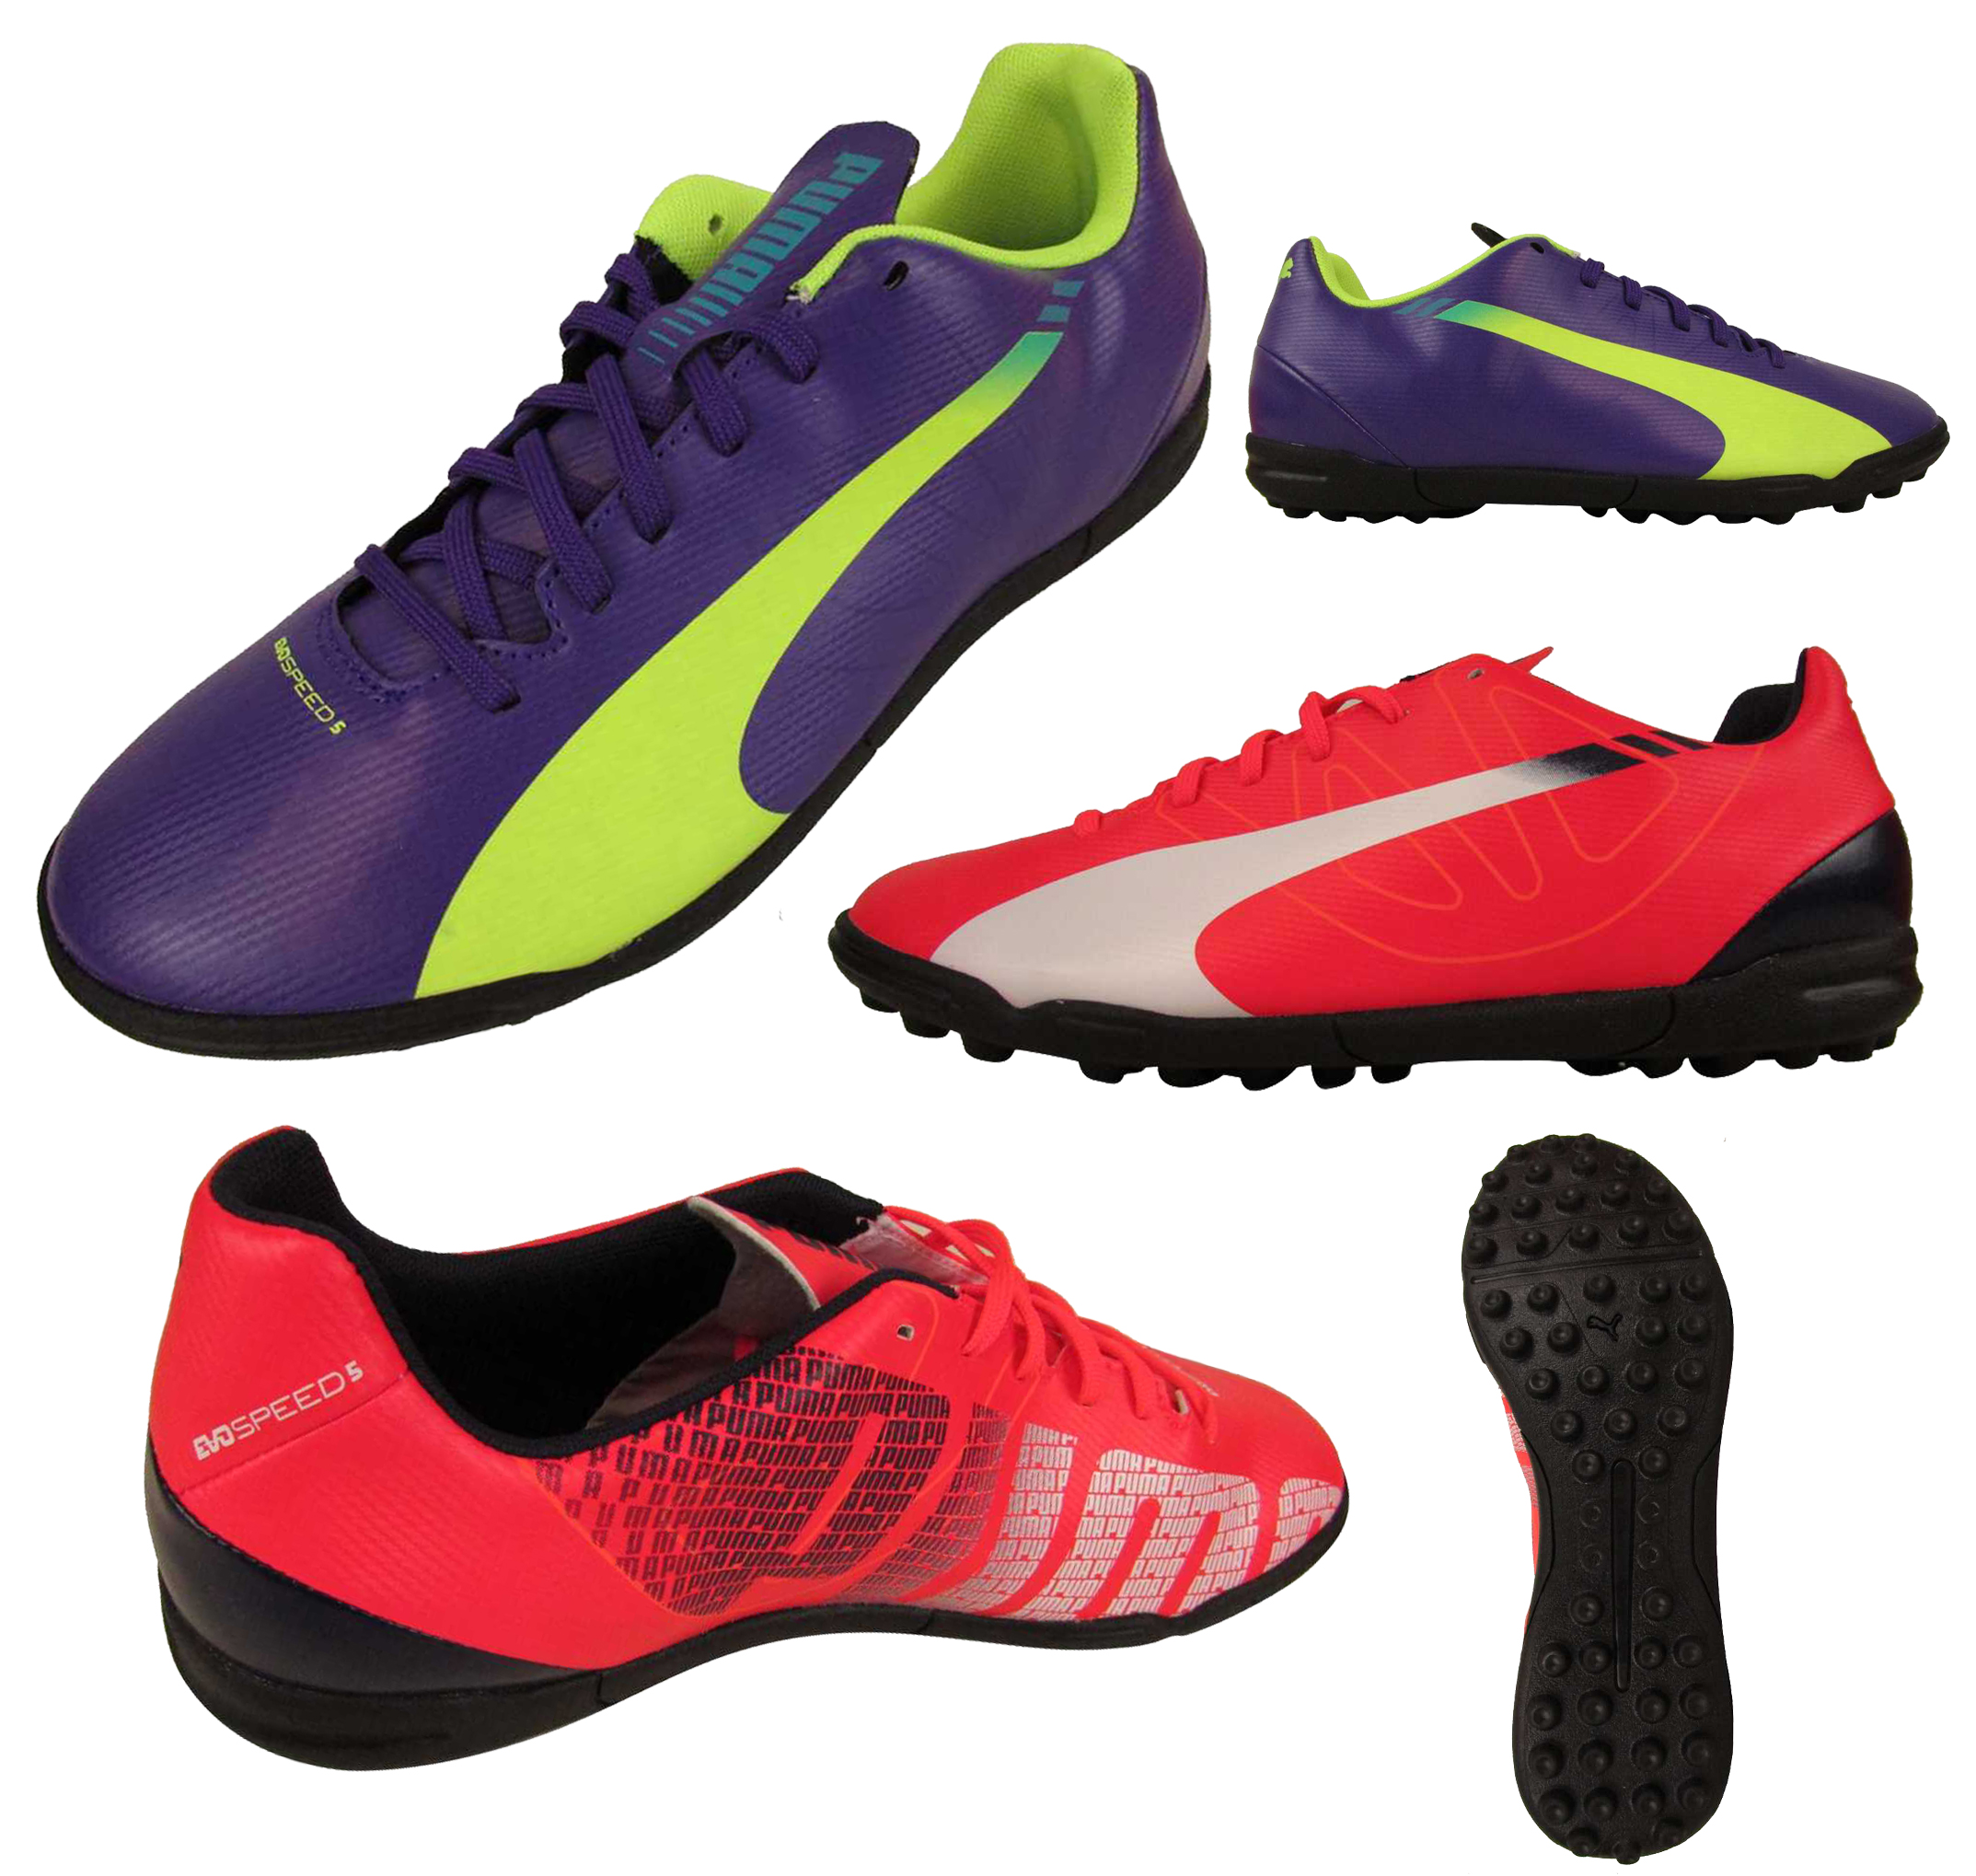 Mens Puma evoSPEED 5.3 TT Football Astro Turf Trainer Soccer Trainers  Astros New a2eaad24e